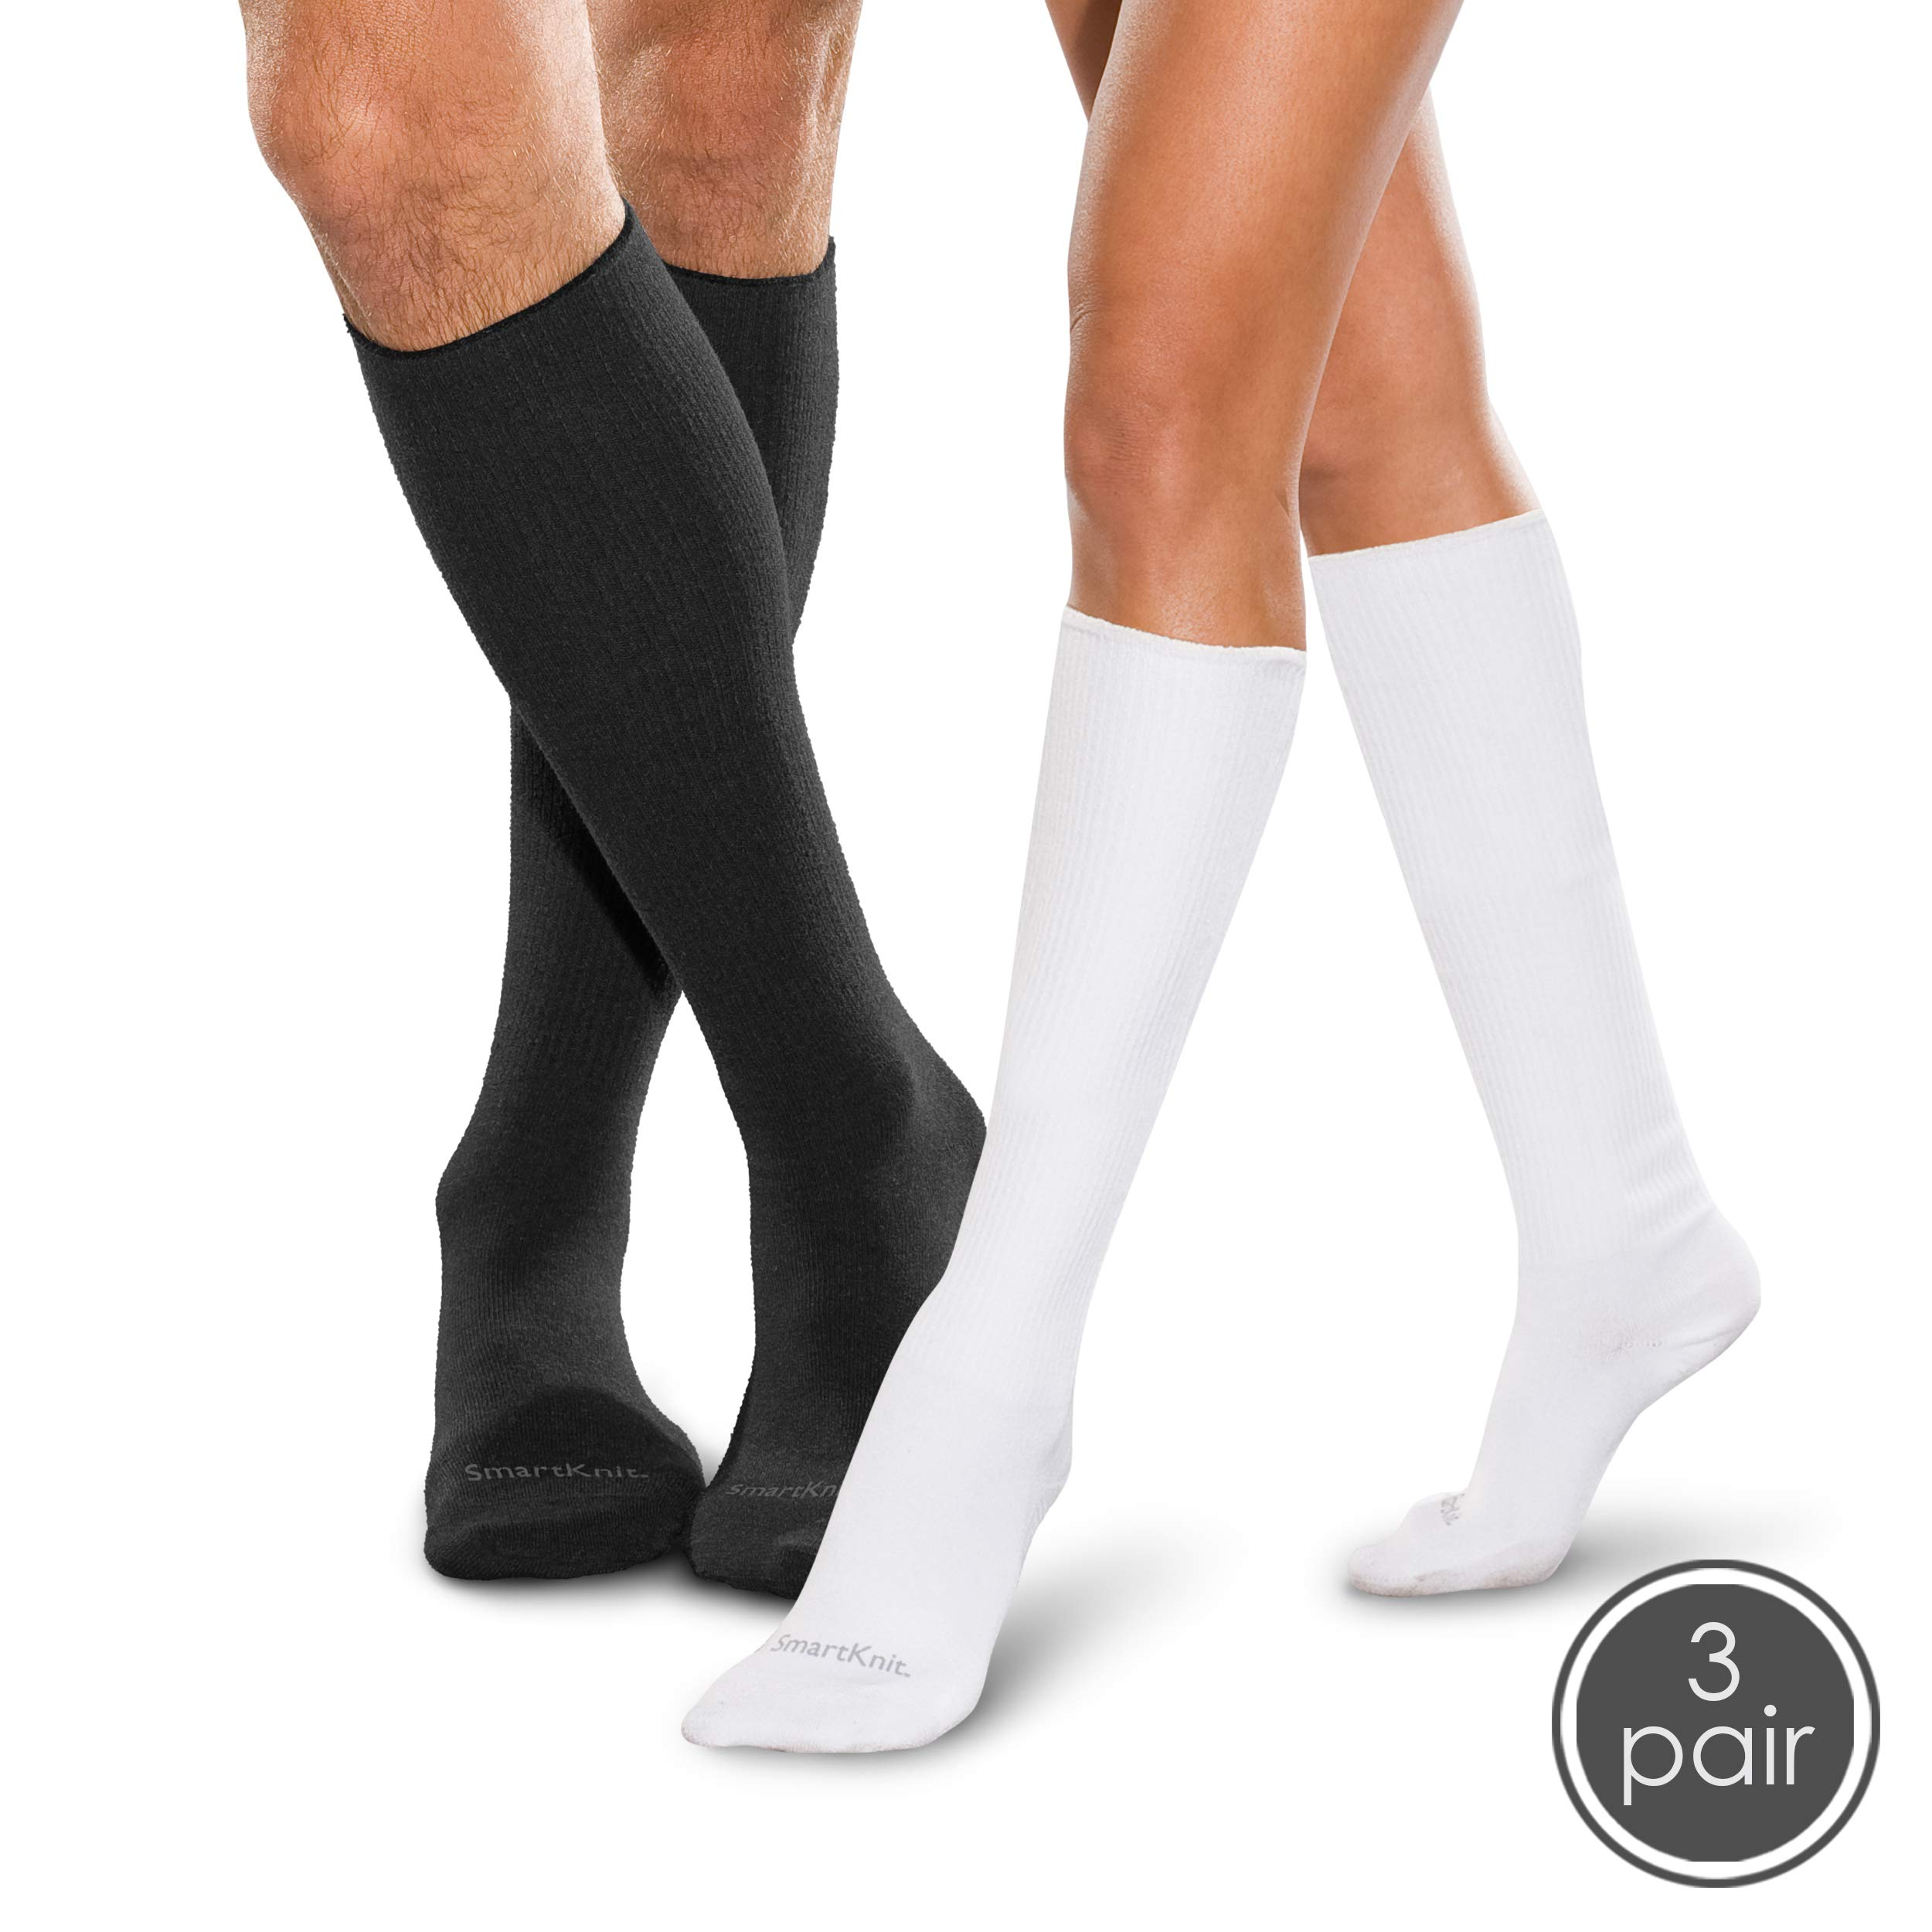 SmartKnit Seamless Diabetic Over-The-Calf Socks- 3 Pack - Small - Black White & White by SmartKnit